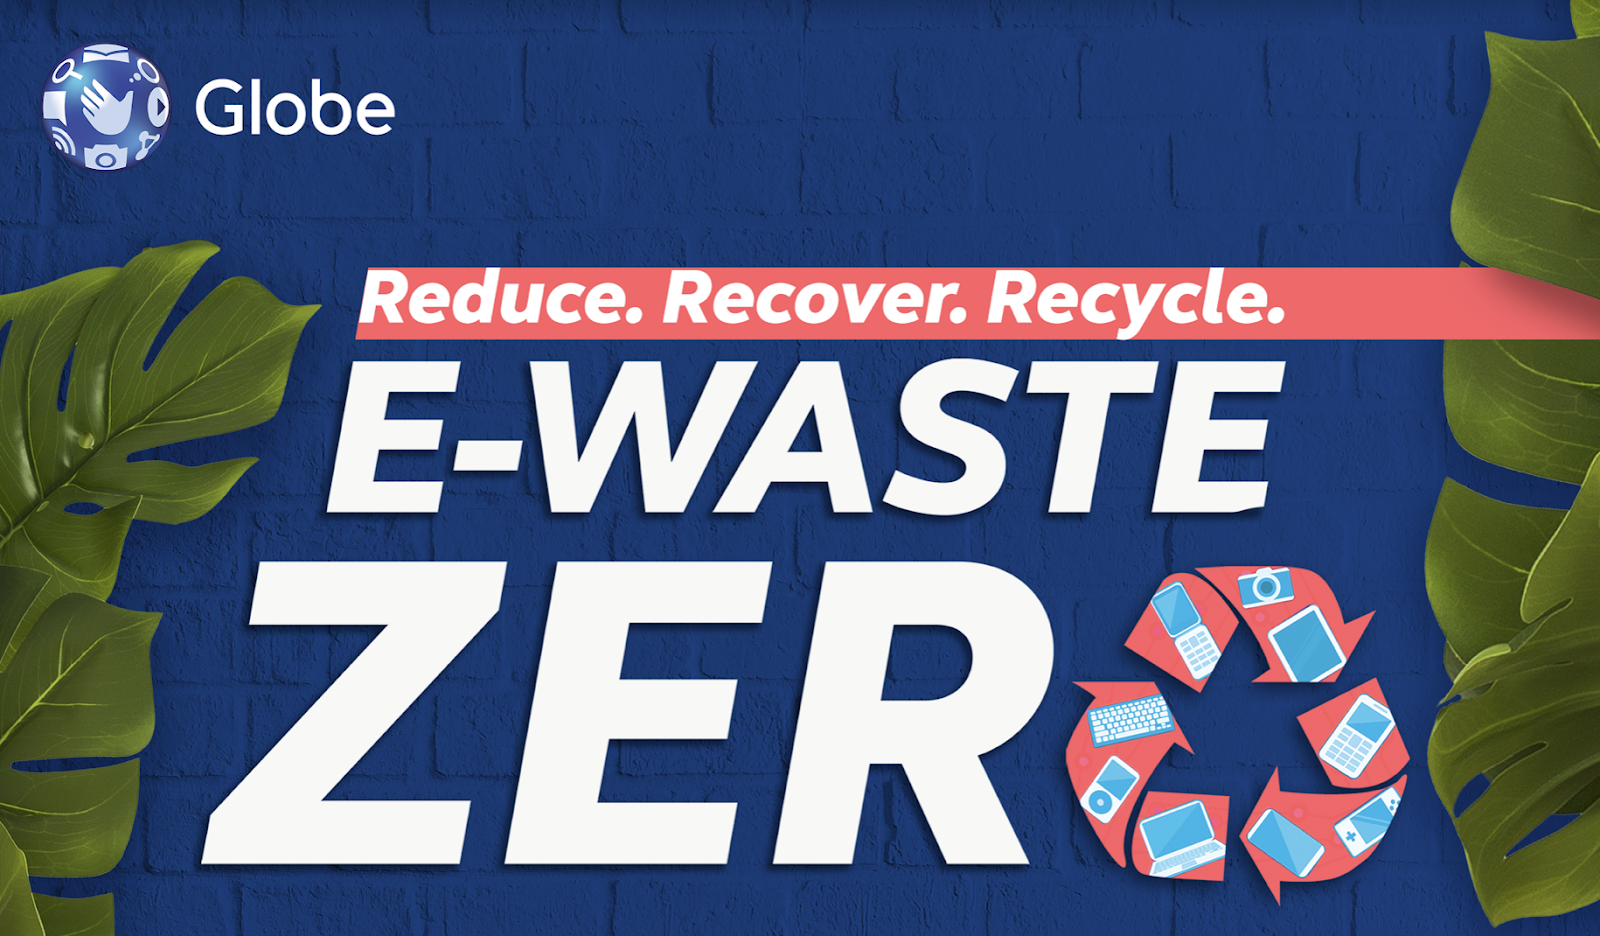 Globe sets up over 100 e-waste collection points nationwide